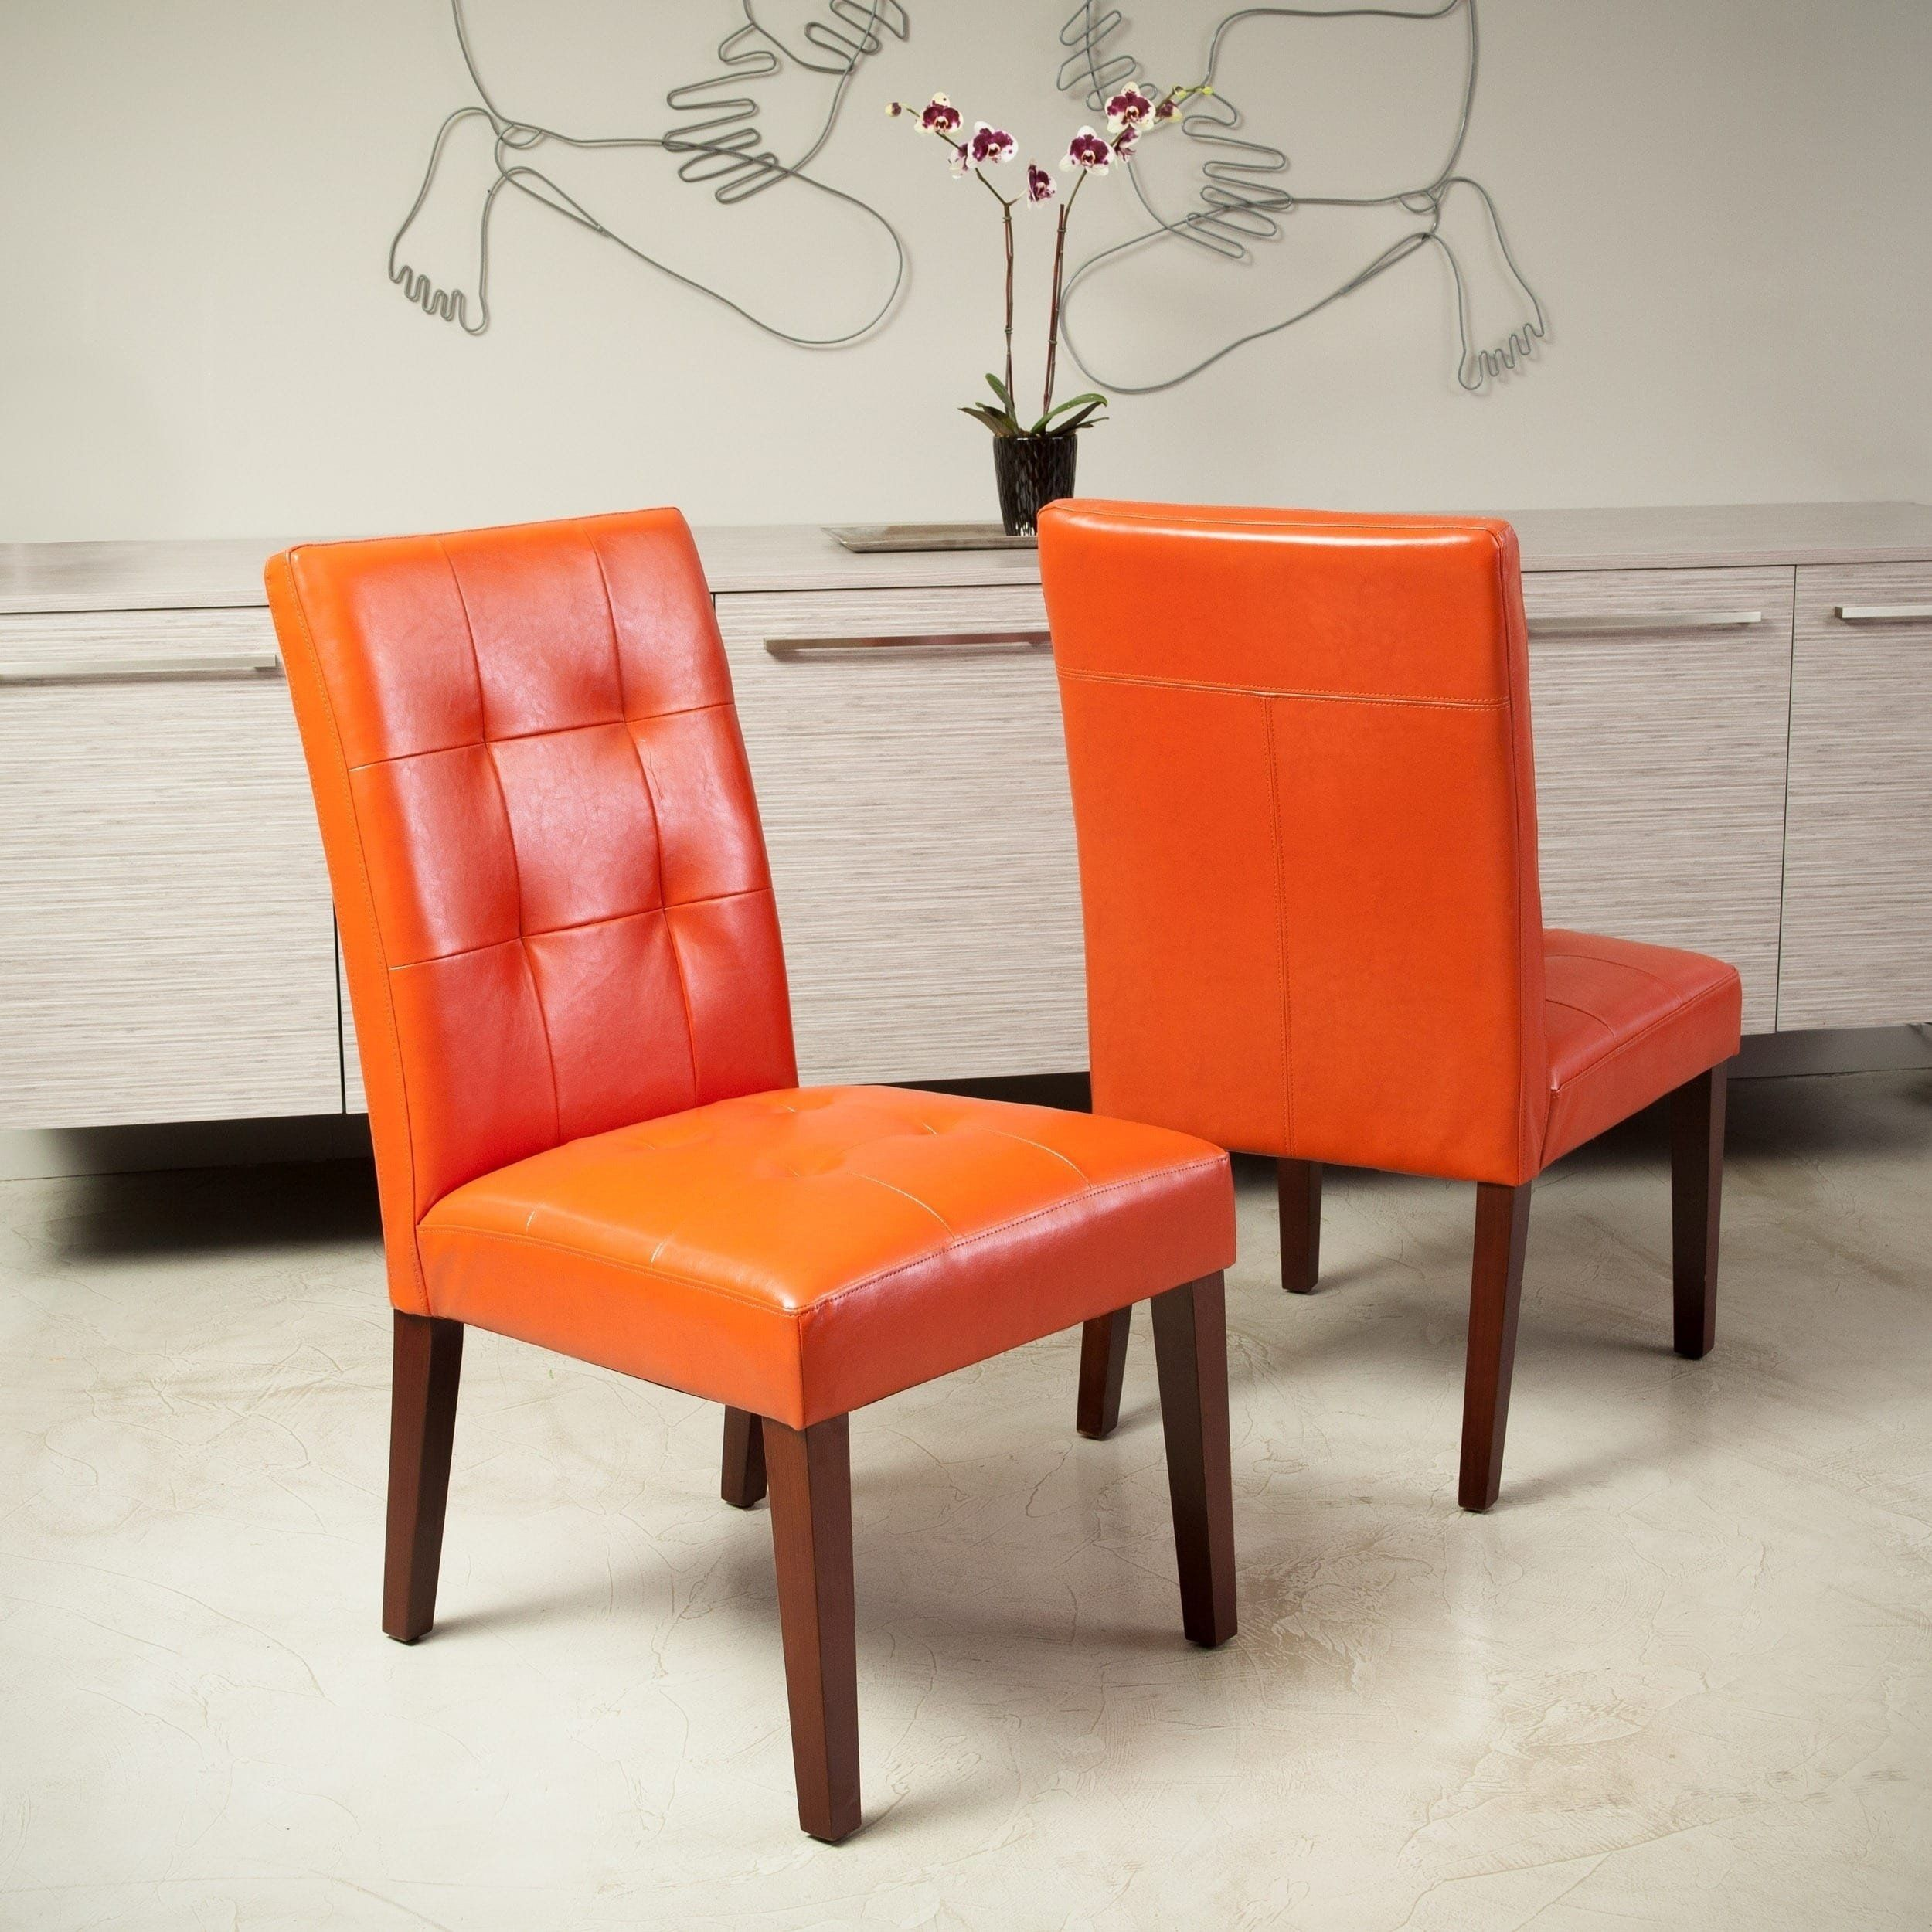 Cambridge Tufted Orange Bonded Leather Dining Chair By Christopher Knight Home Burnt Set Of 2